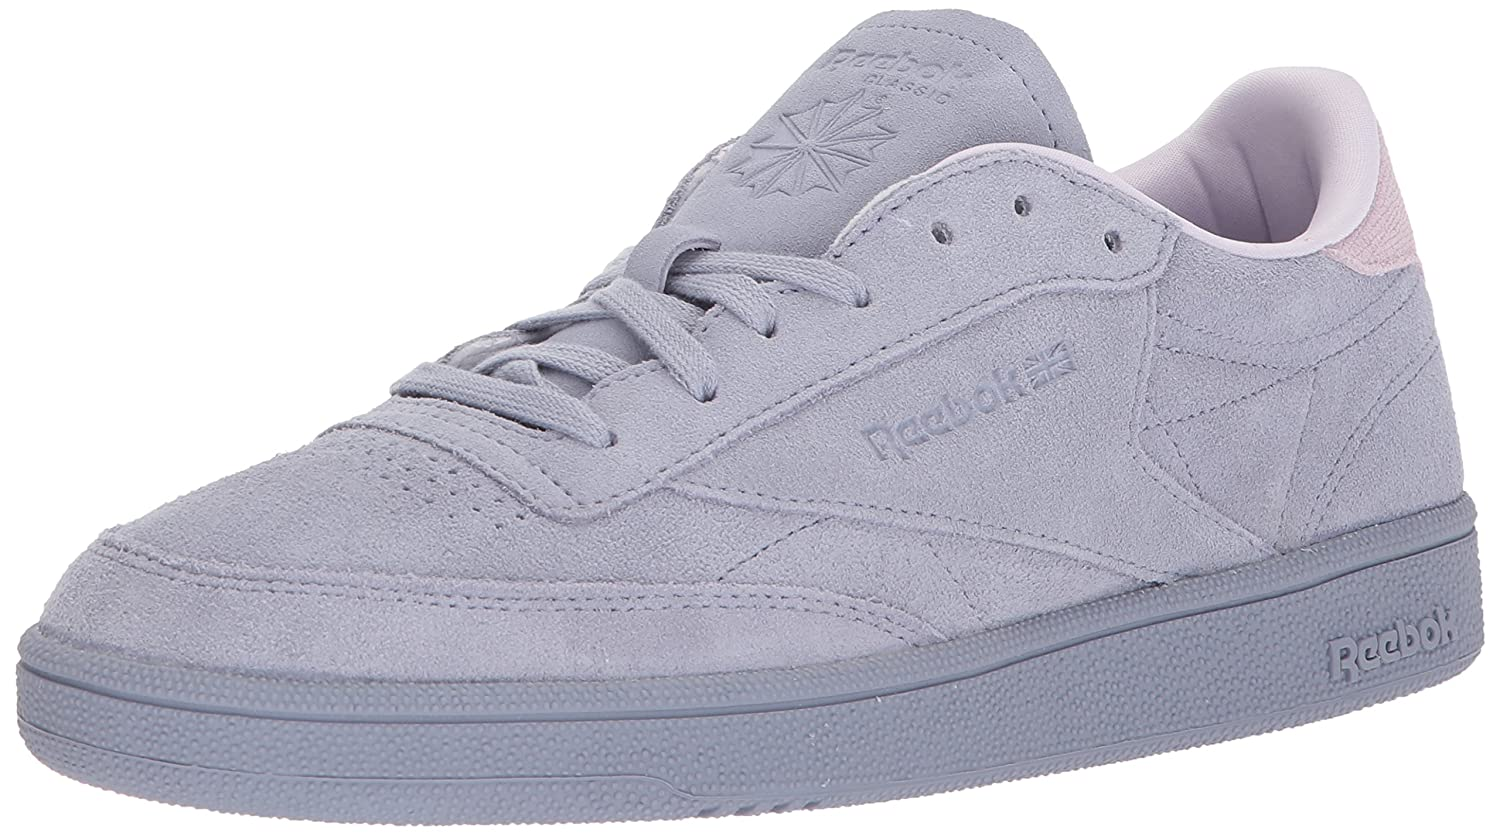 Reebok Women's Club C 85 NBK Sneaker B072M8GCT8 10 B(M) US|Purple Fog/Quartz